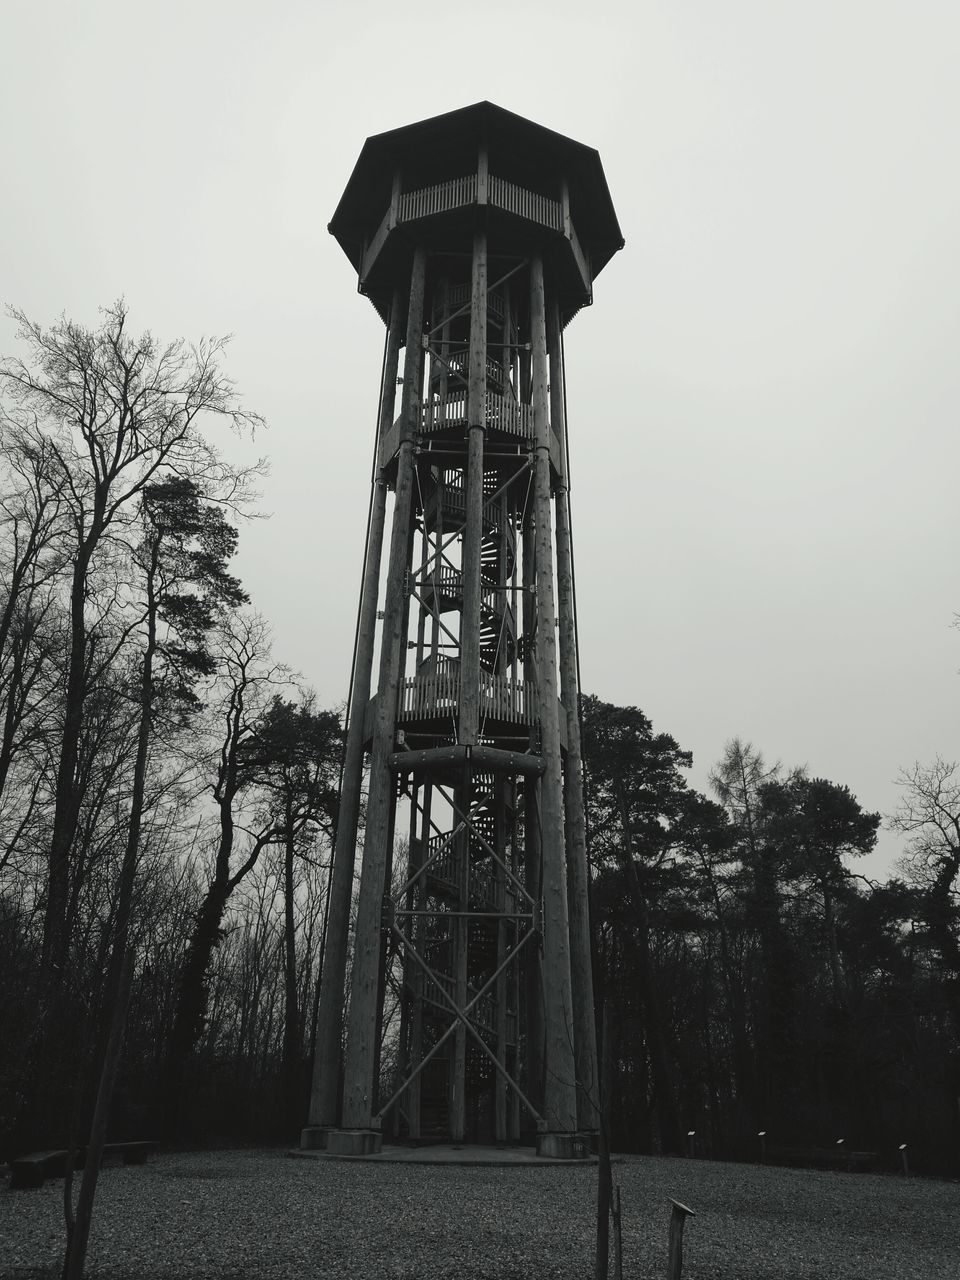 tree, built structure, architecture, outdoors, low angle view, lookout tower, day, sky, no people, nature, water tower - storage tank, clear sky, water